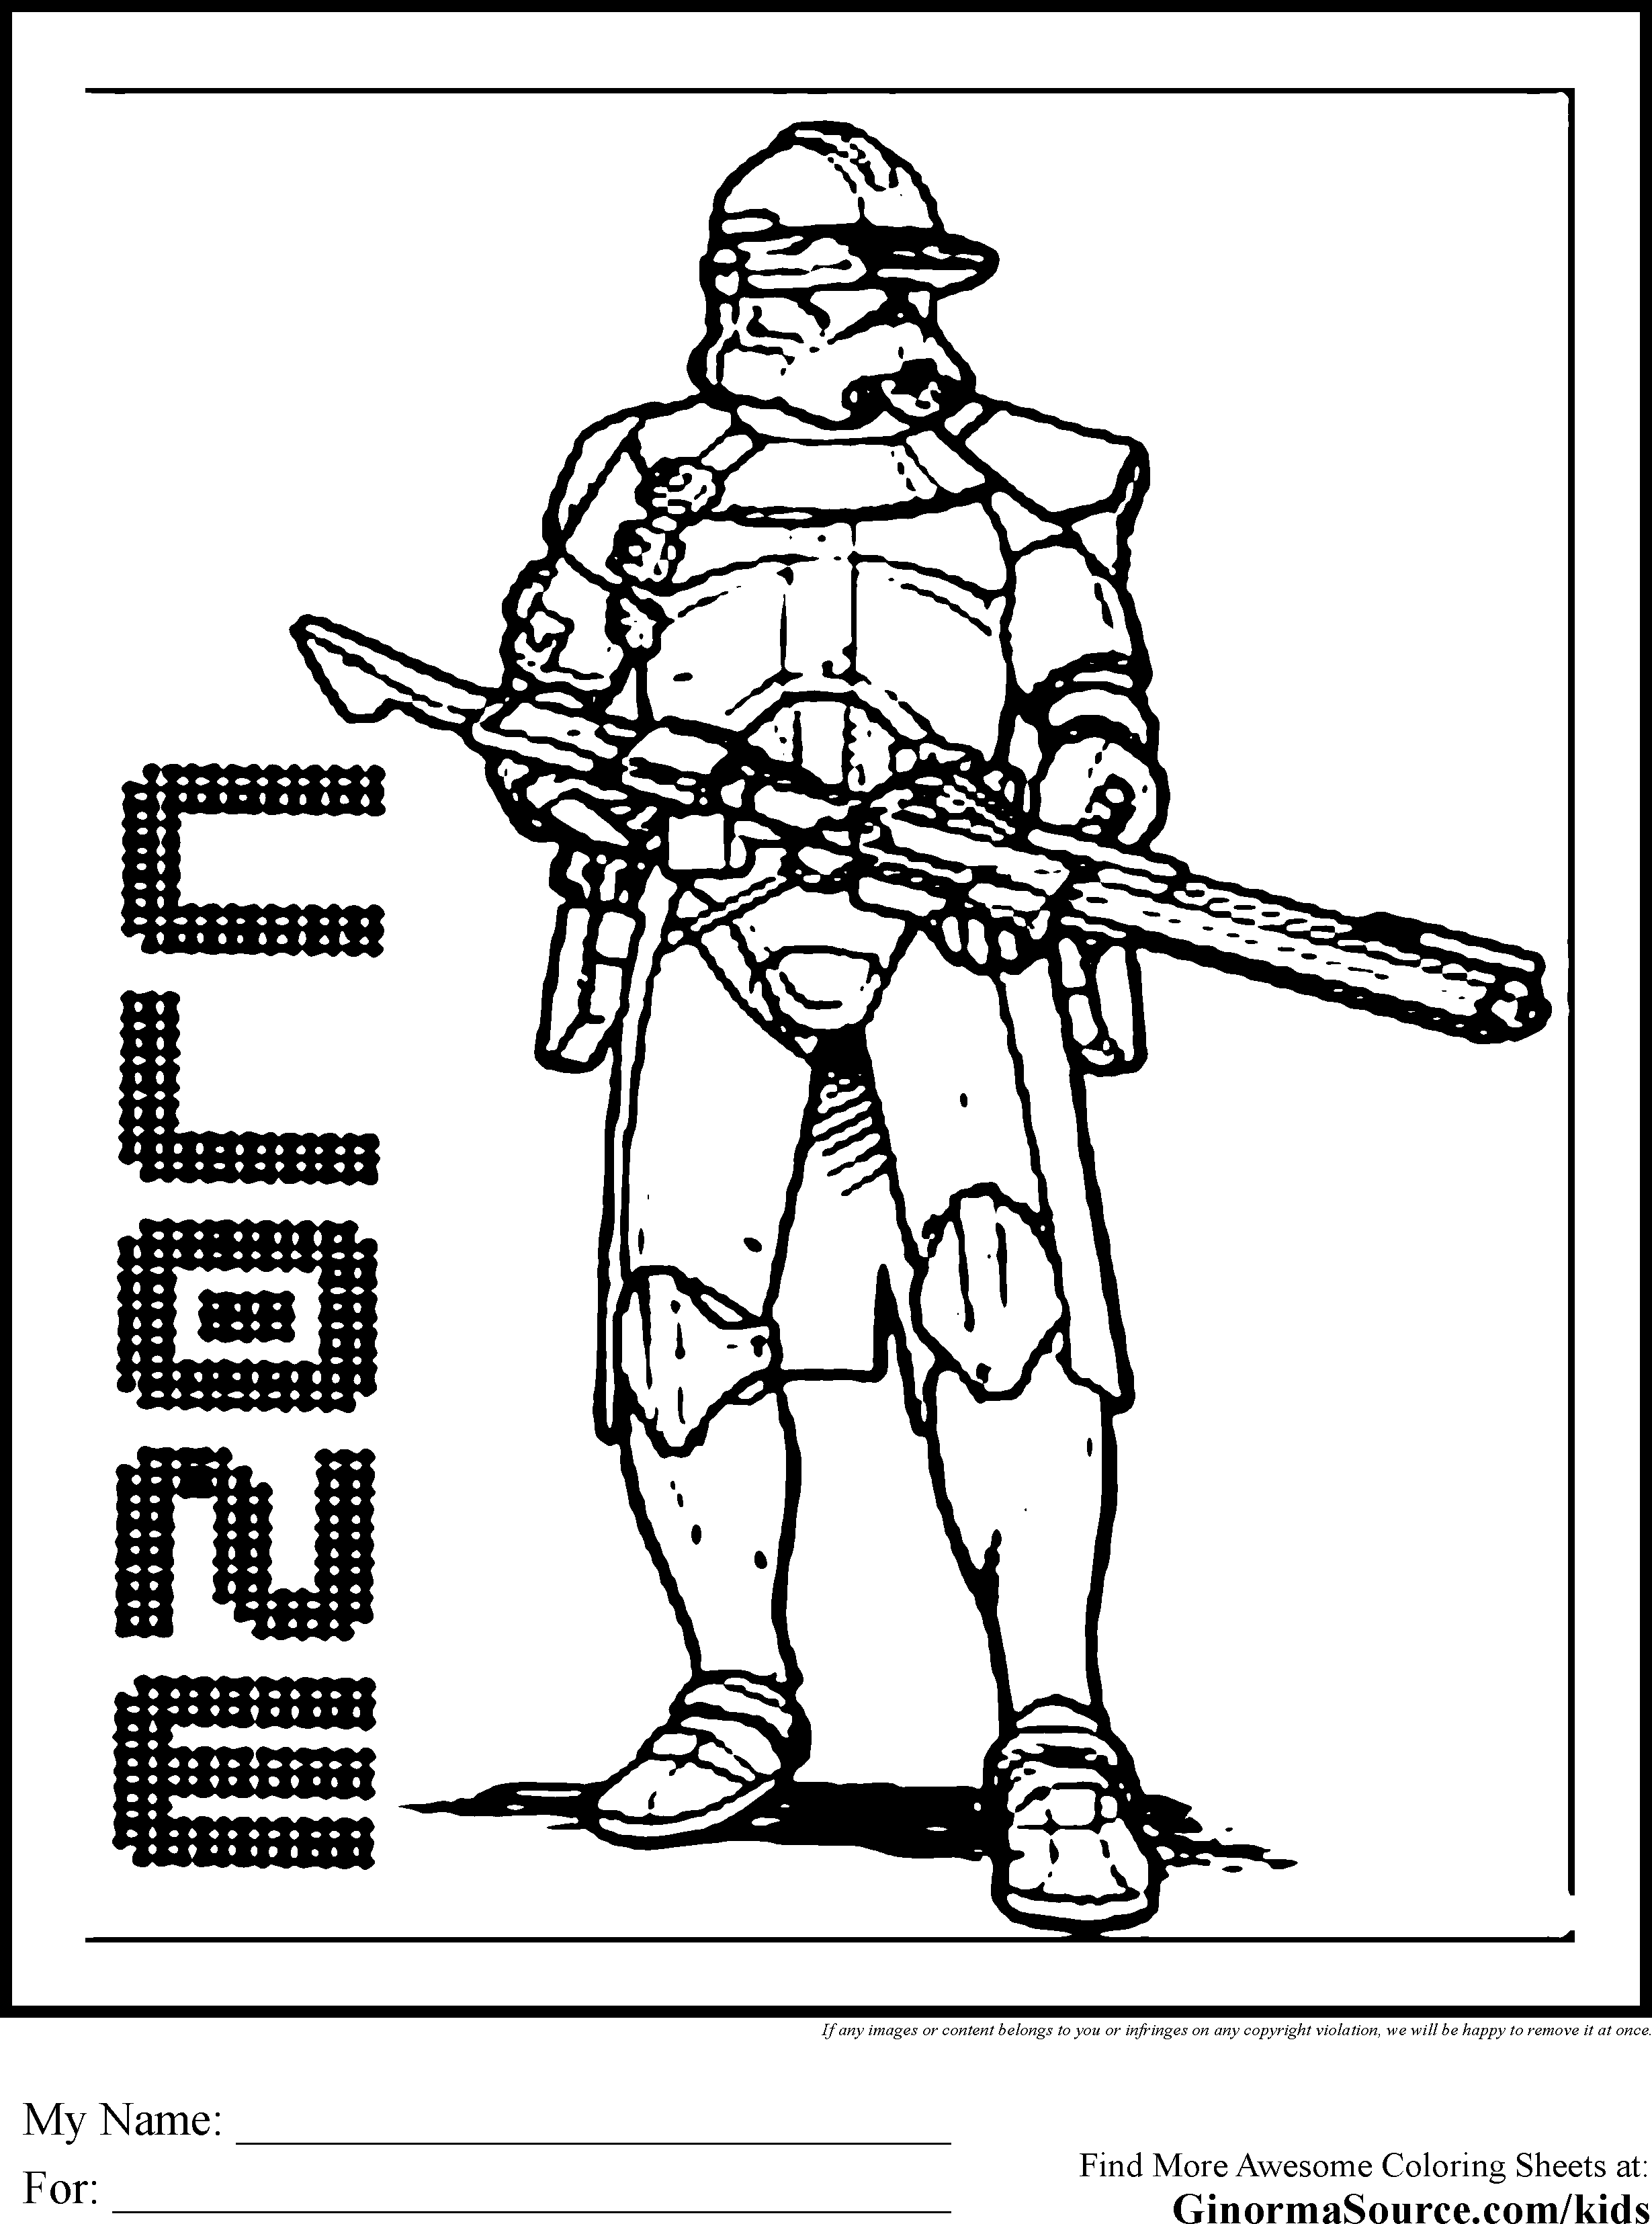 star wars coloring pictures 101 star wars coloring pages sept 2020darth vader star coloring wars pictures